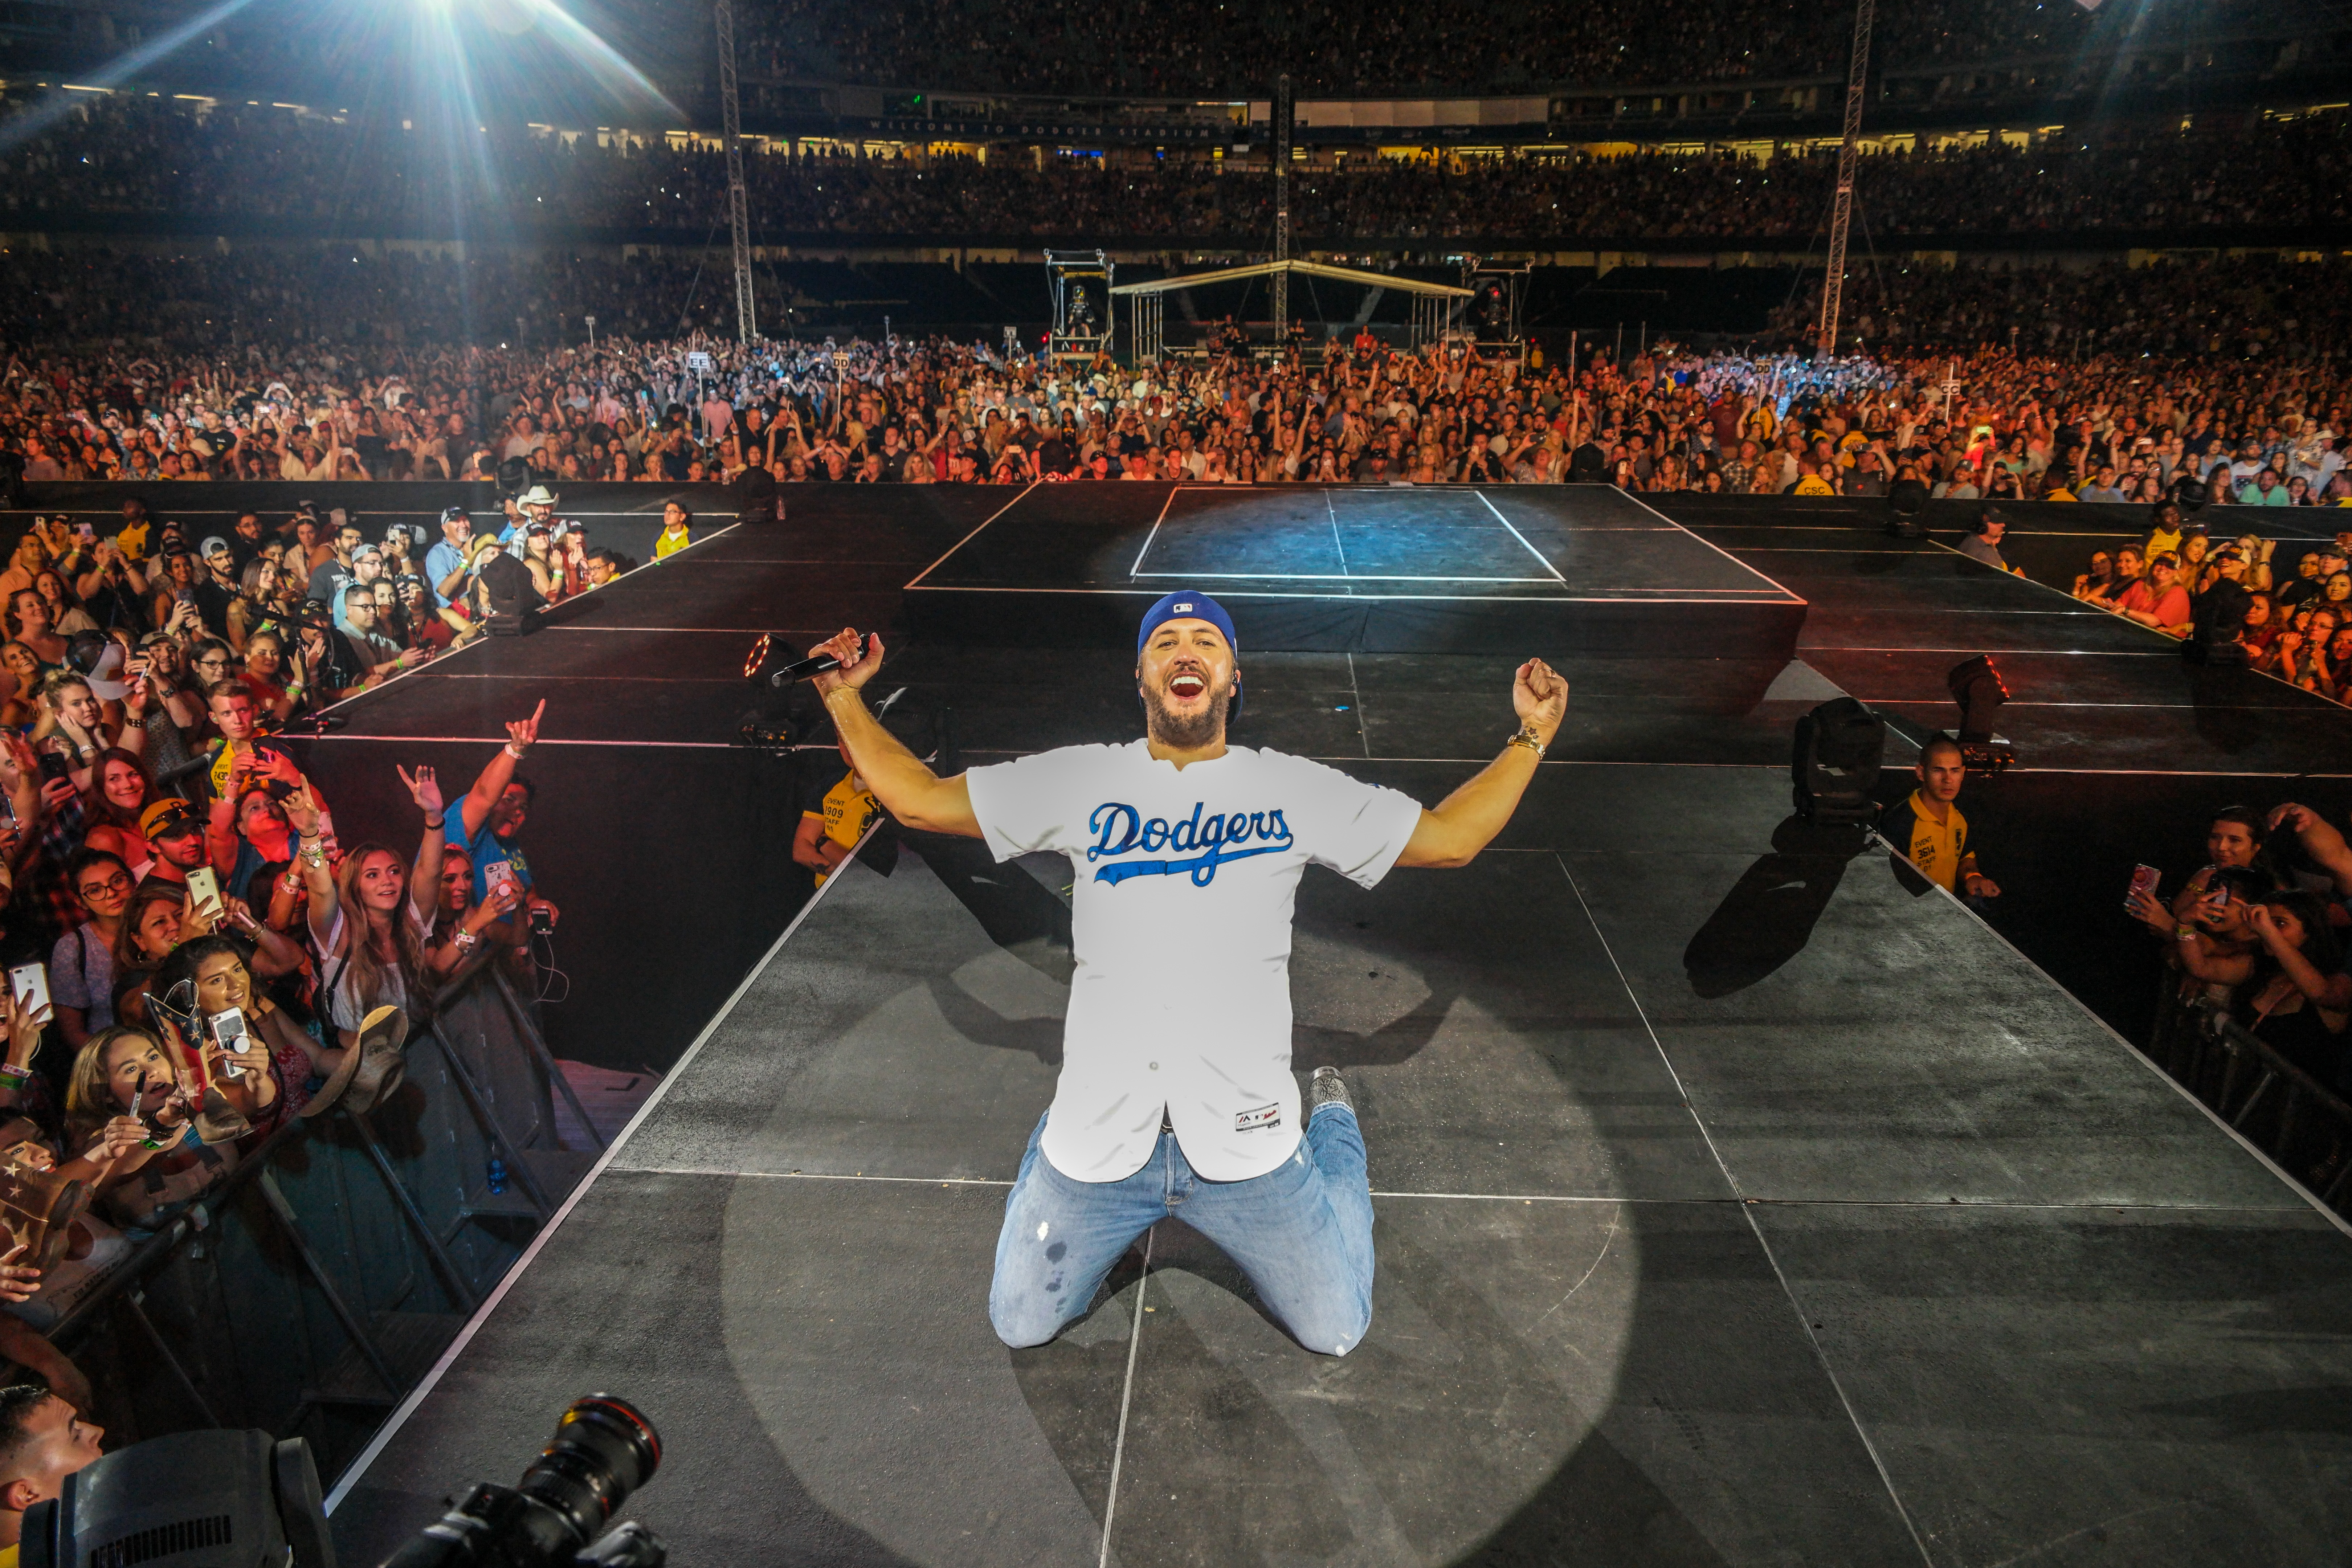 Luke Bryan Makes History with Dodger Stadium Headlining Show